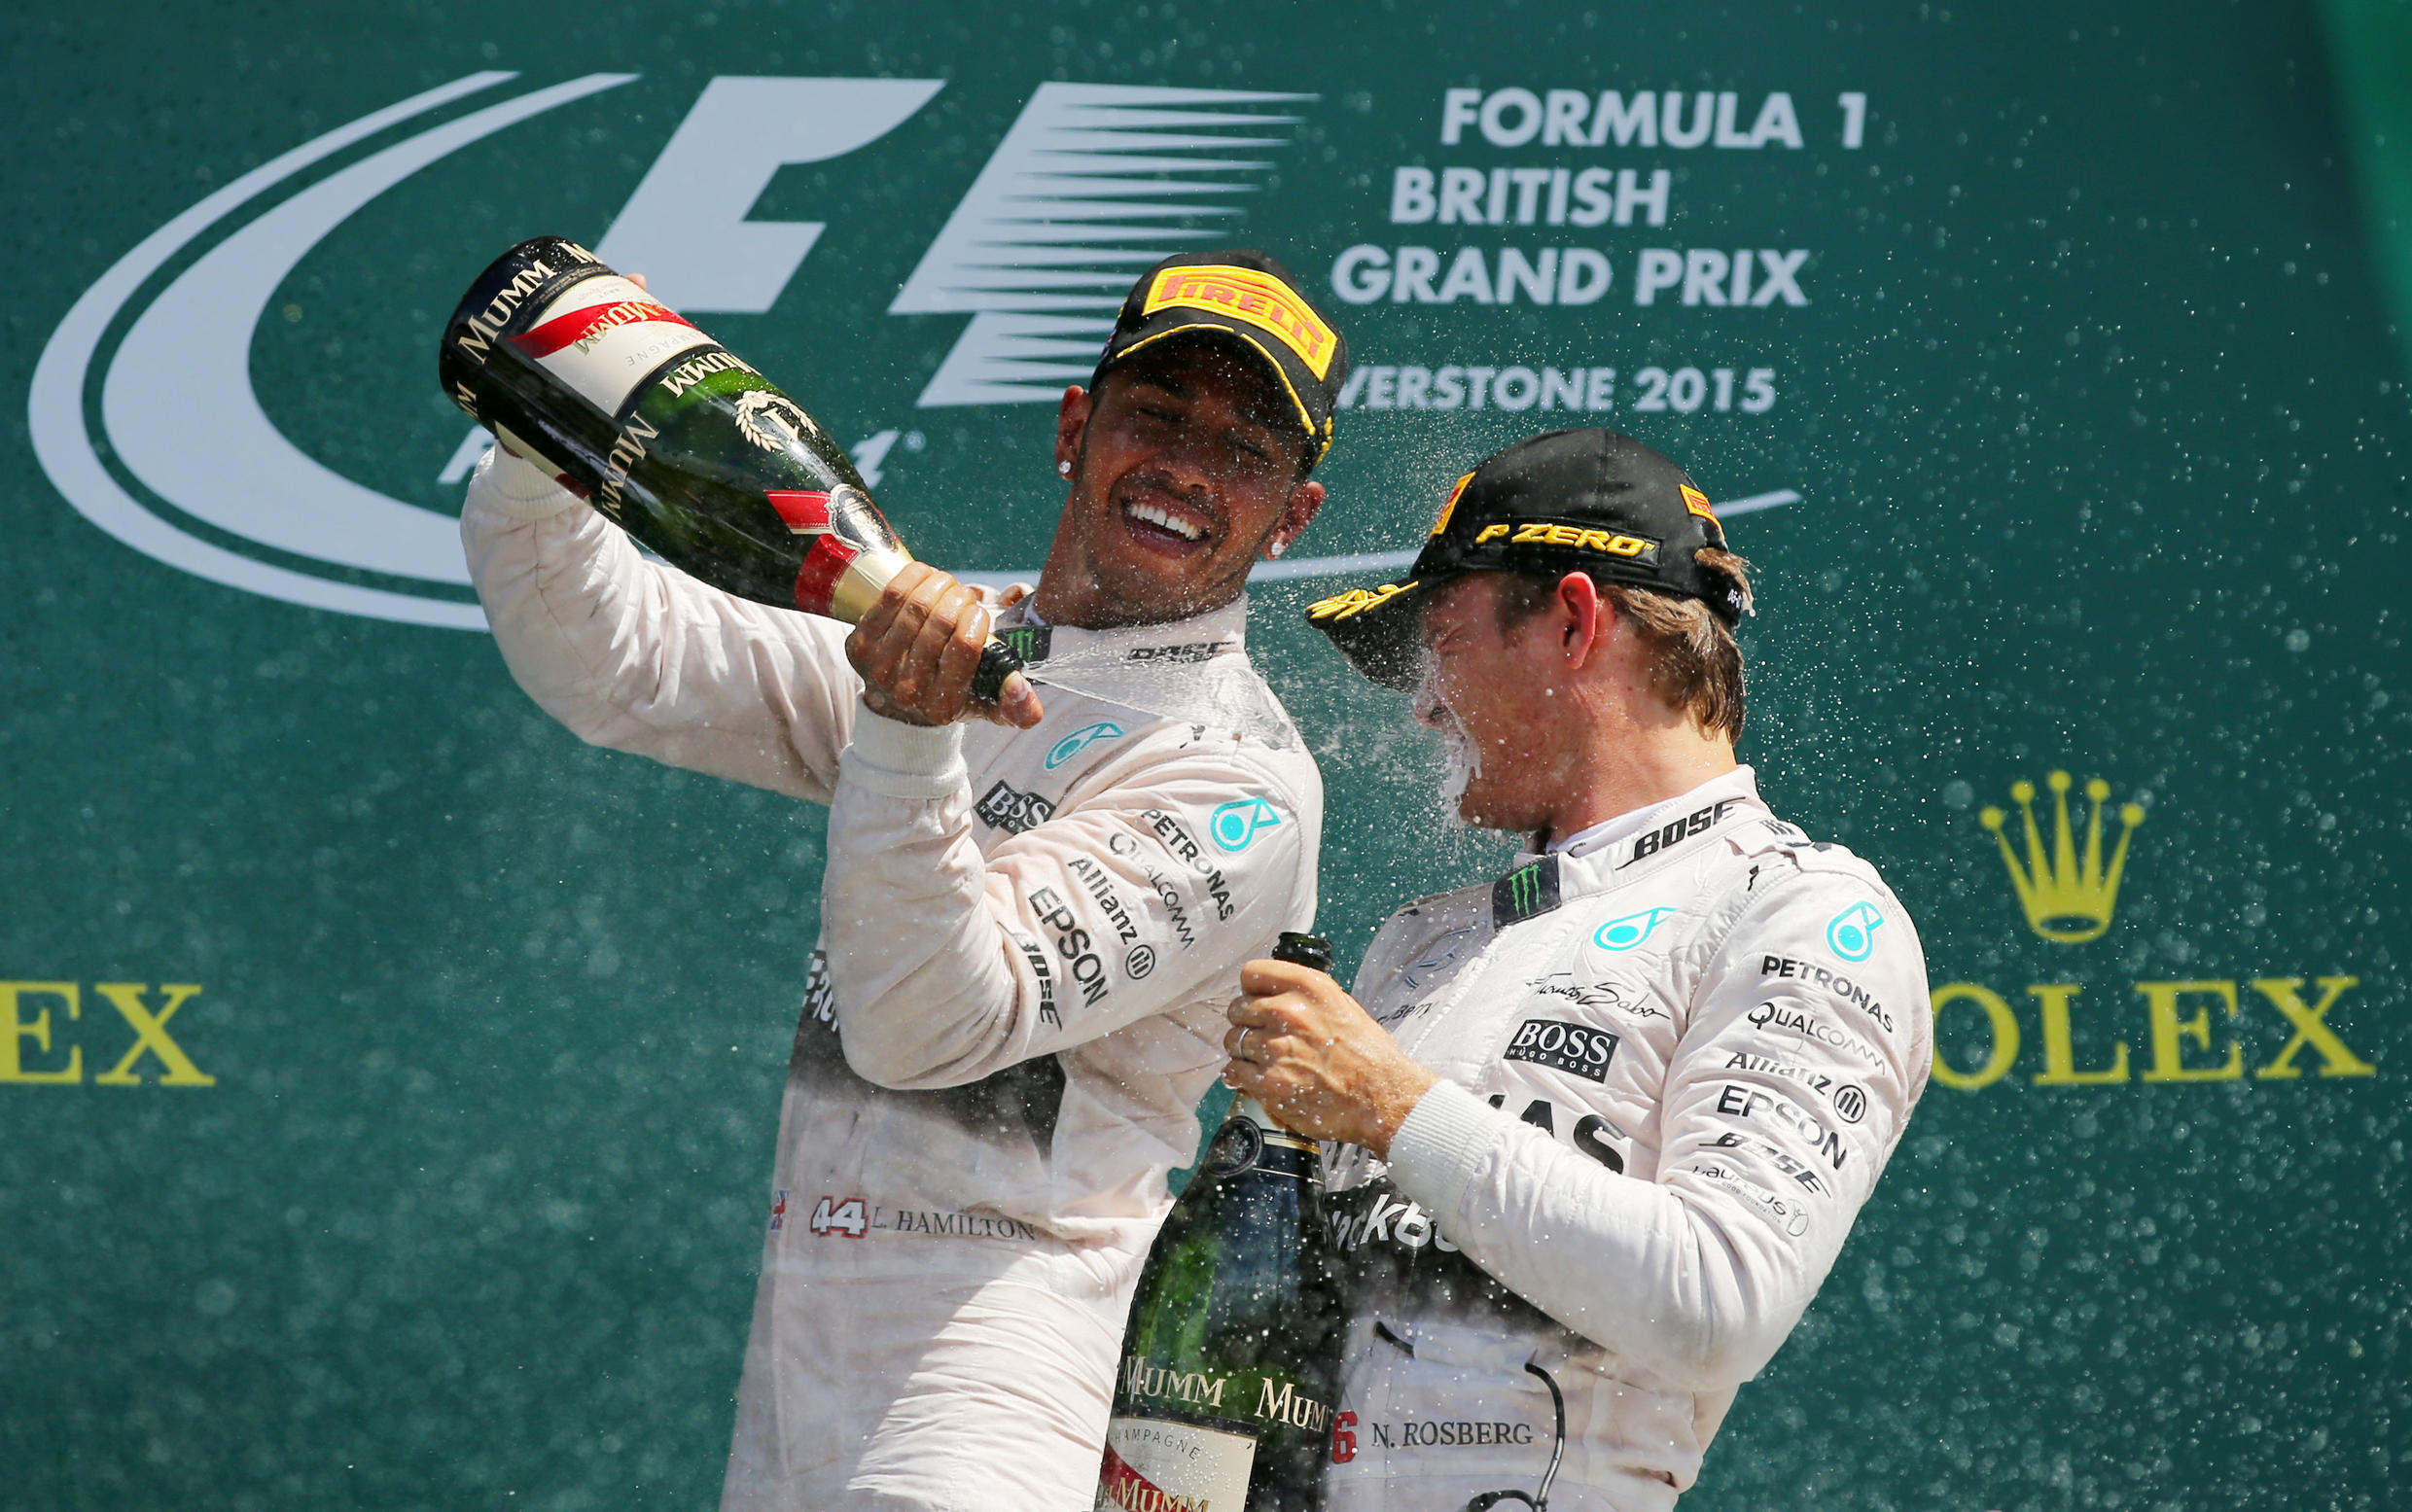 Lewis Hamilton (left) and Nico Rosberg celebrate after finisihing 1st and 2nd at the British Grand Prix on Sunday.